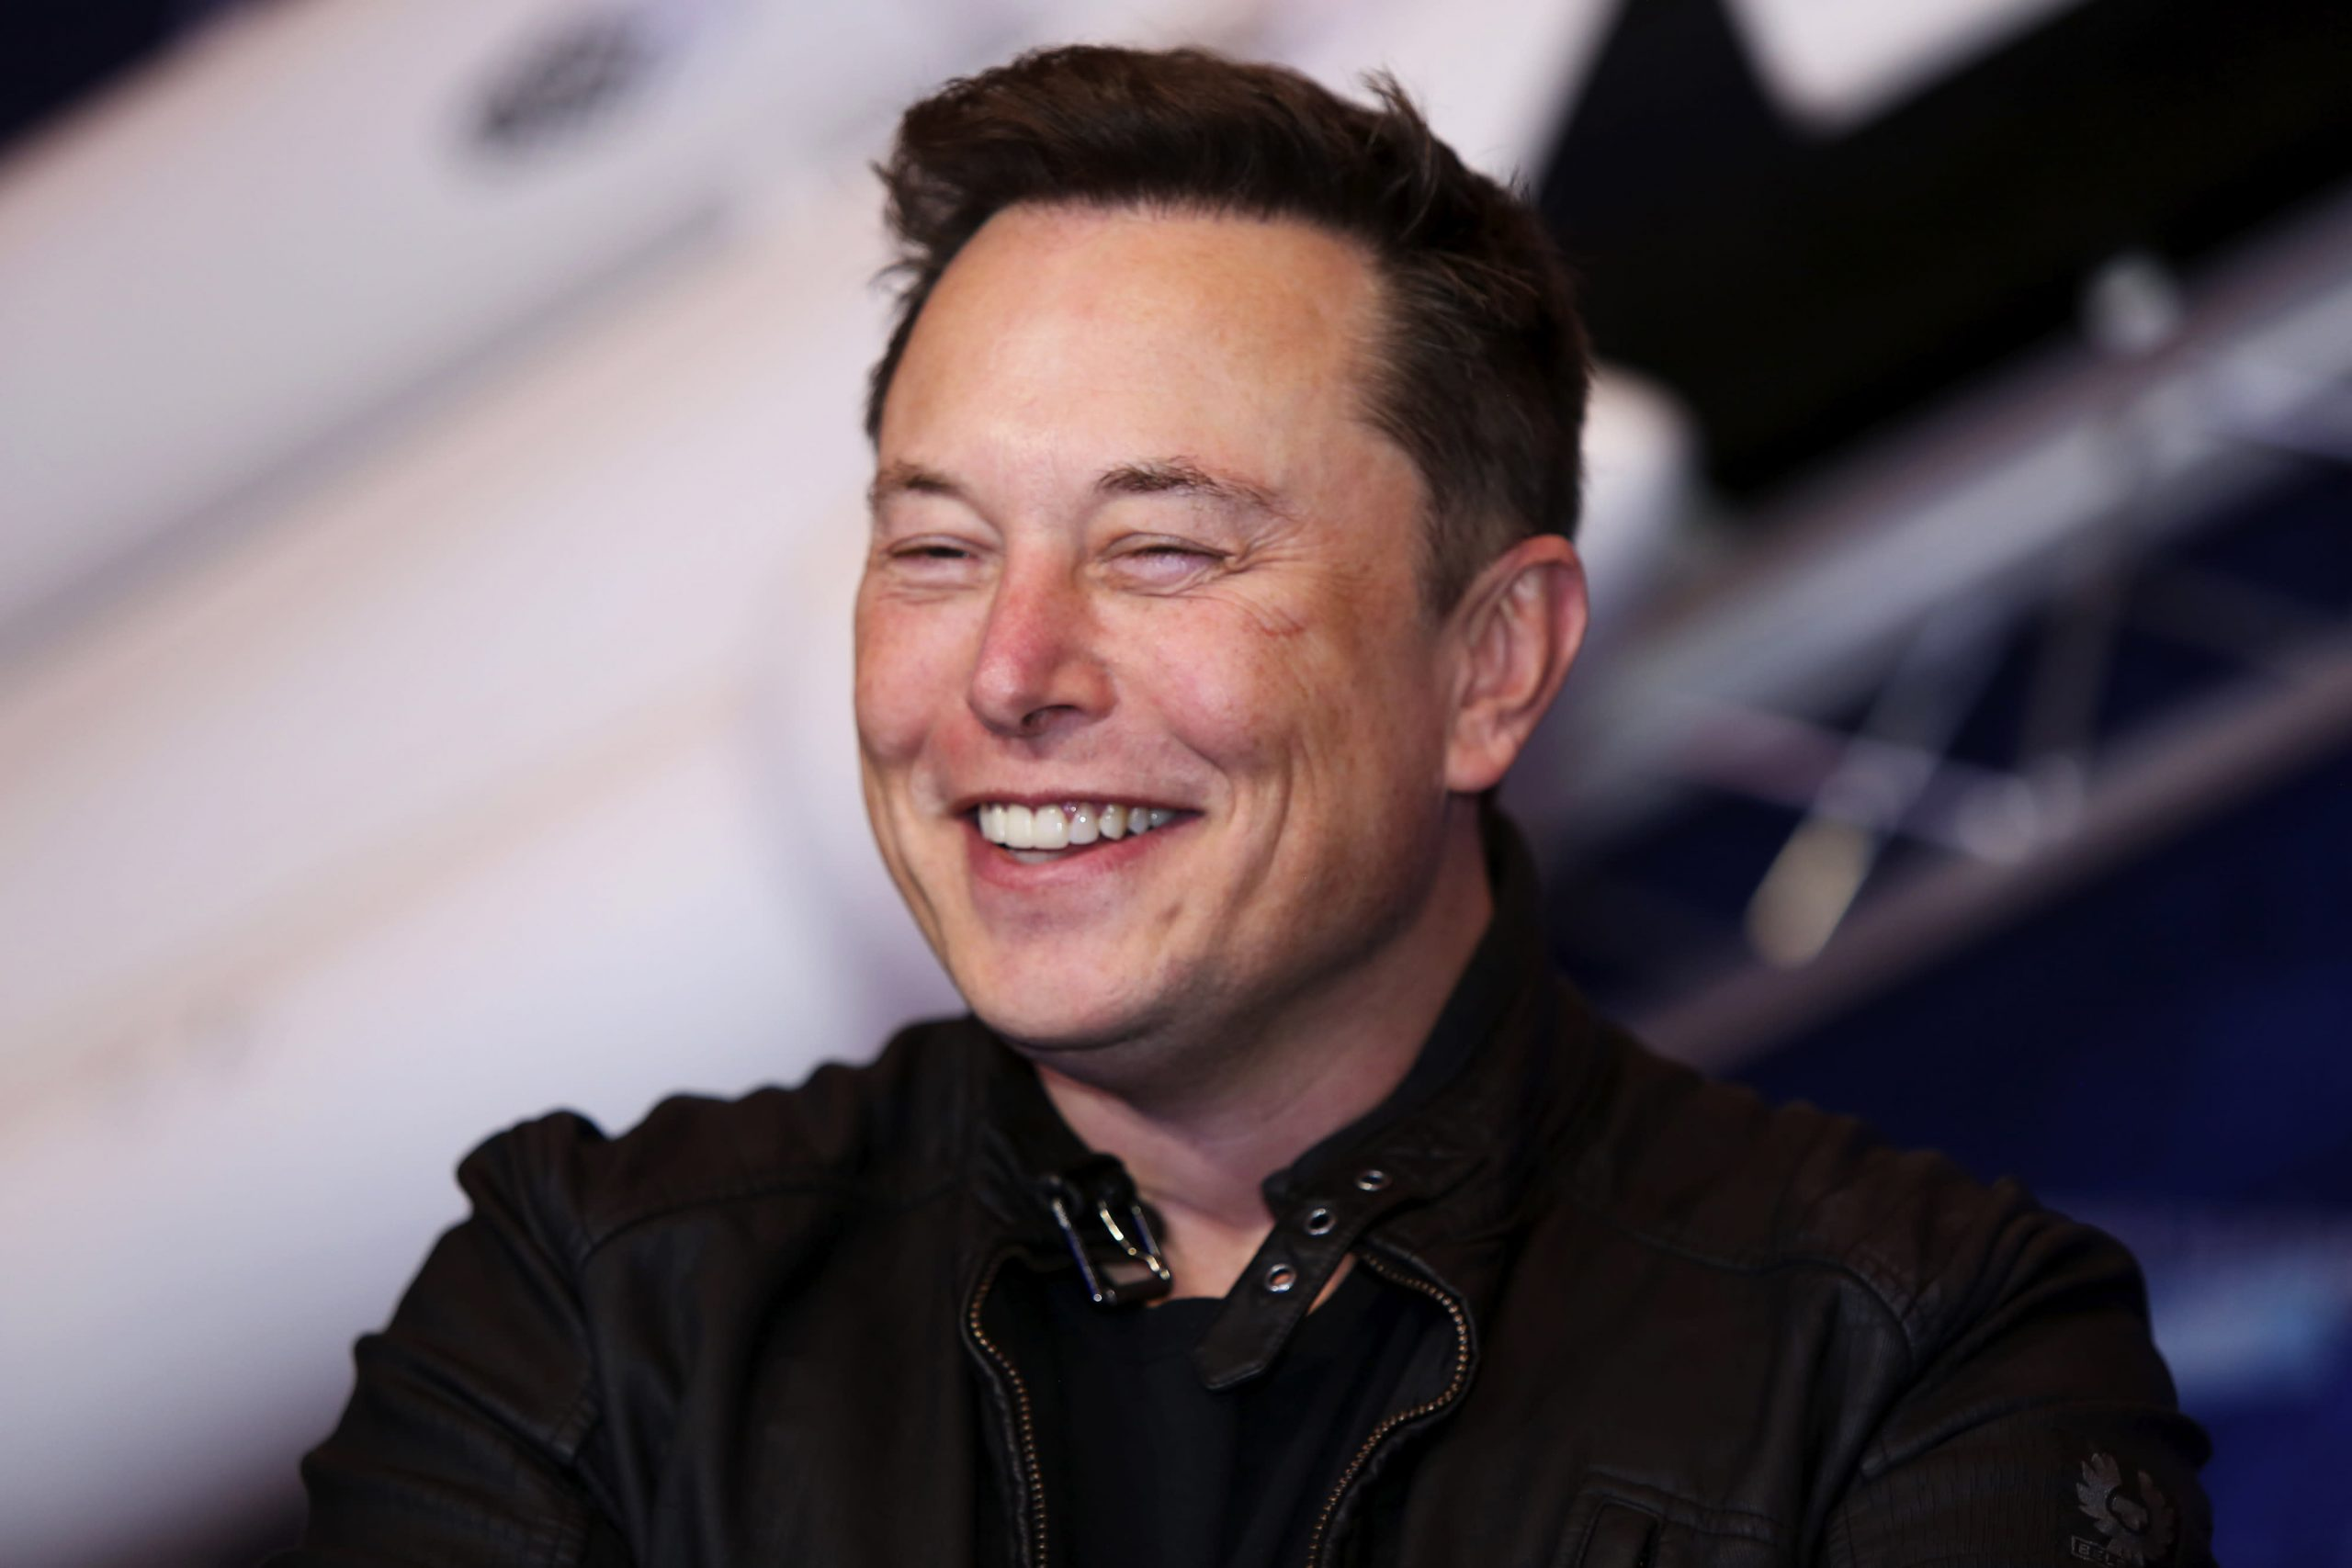 Elon Musk says he's a supporter of bitcoin and thinks it will get 'broad acceptance' in finance